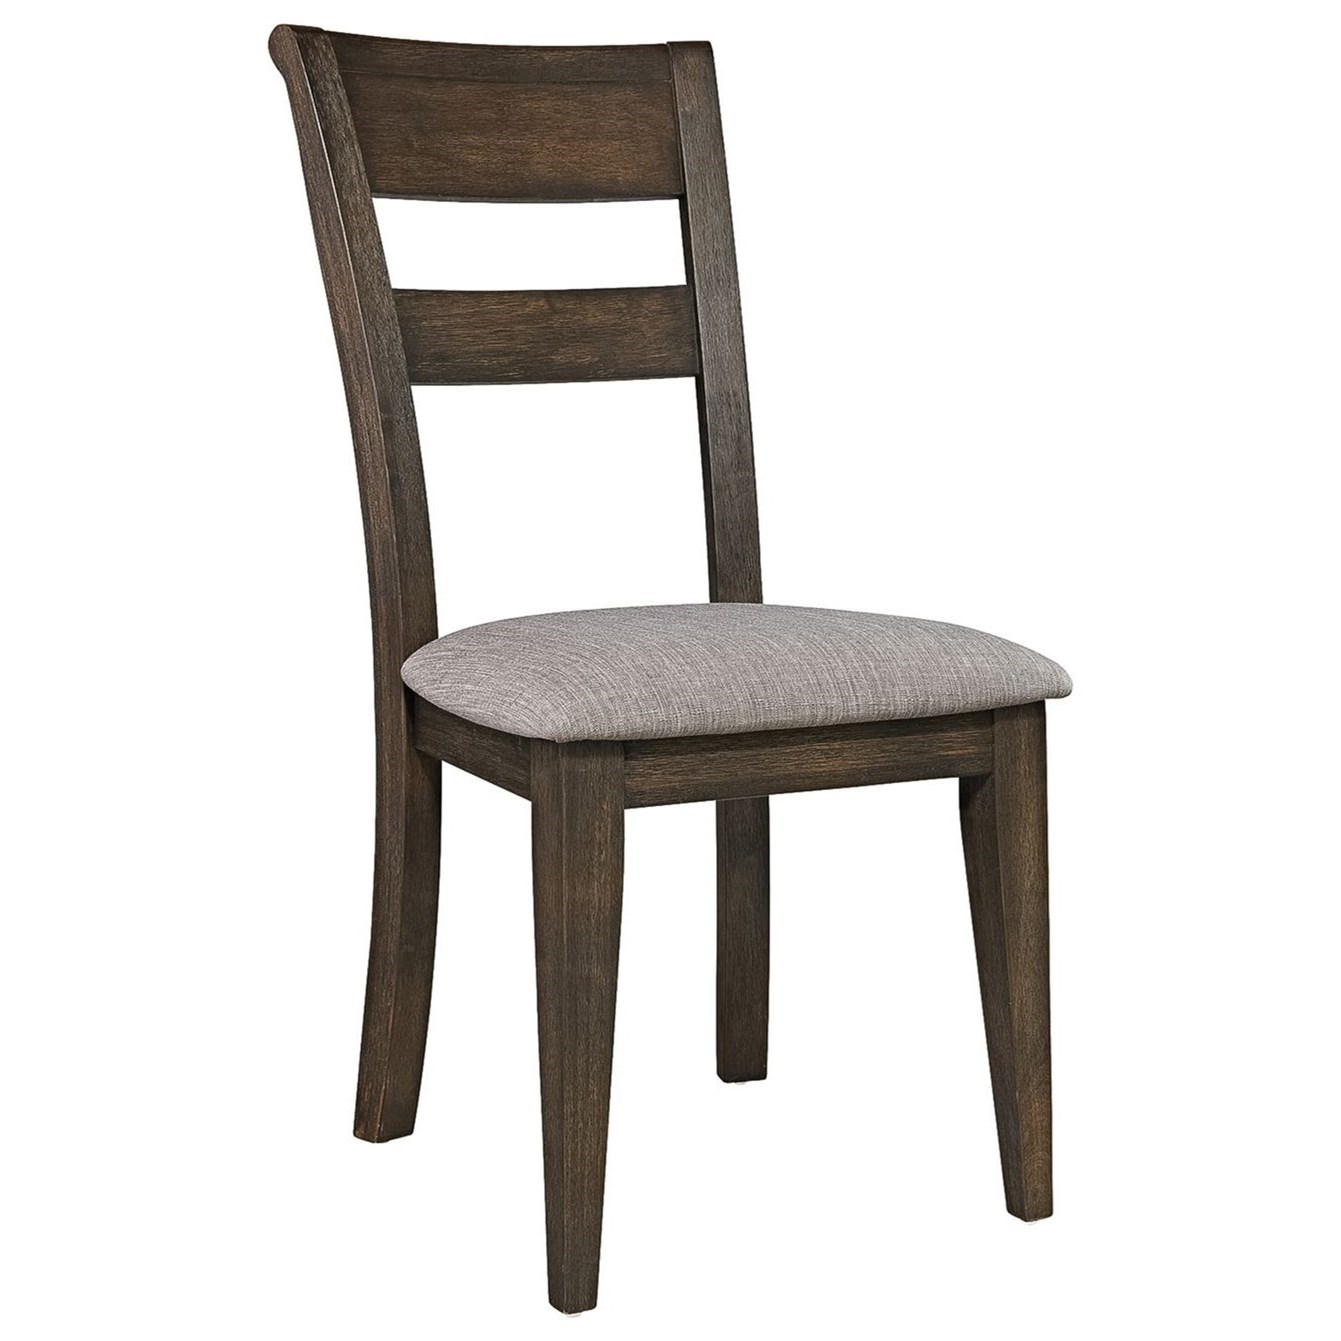 Double Bridge Splat Back Side Chair by Liberty Furniture at Darvin Furniture